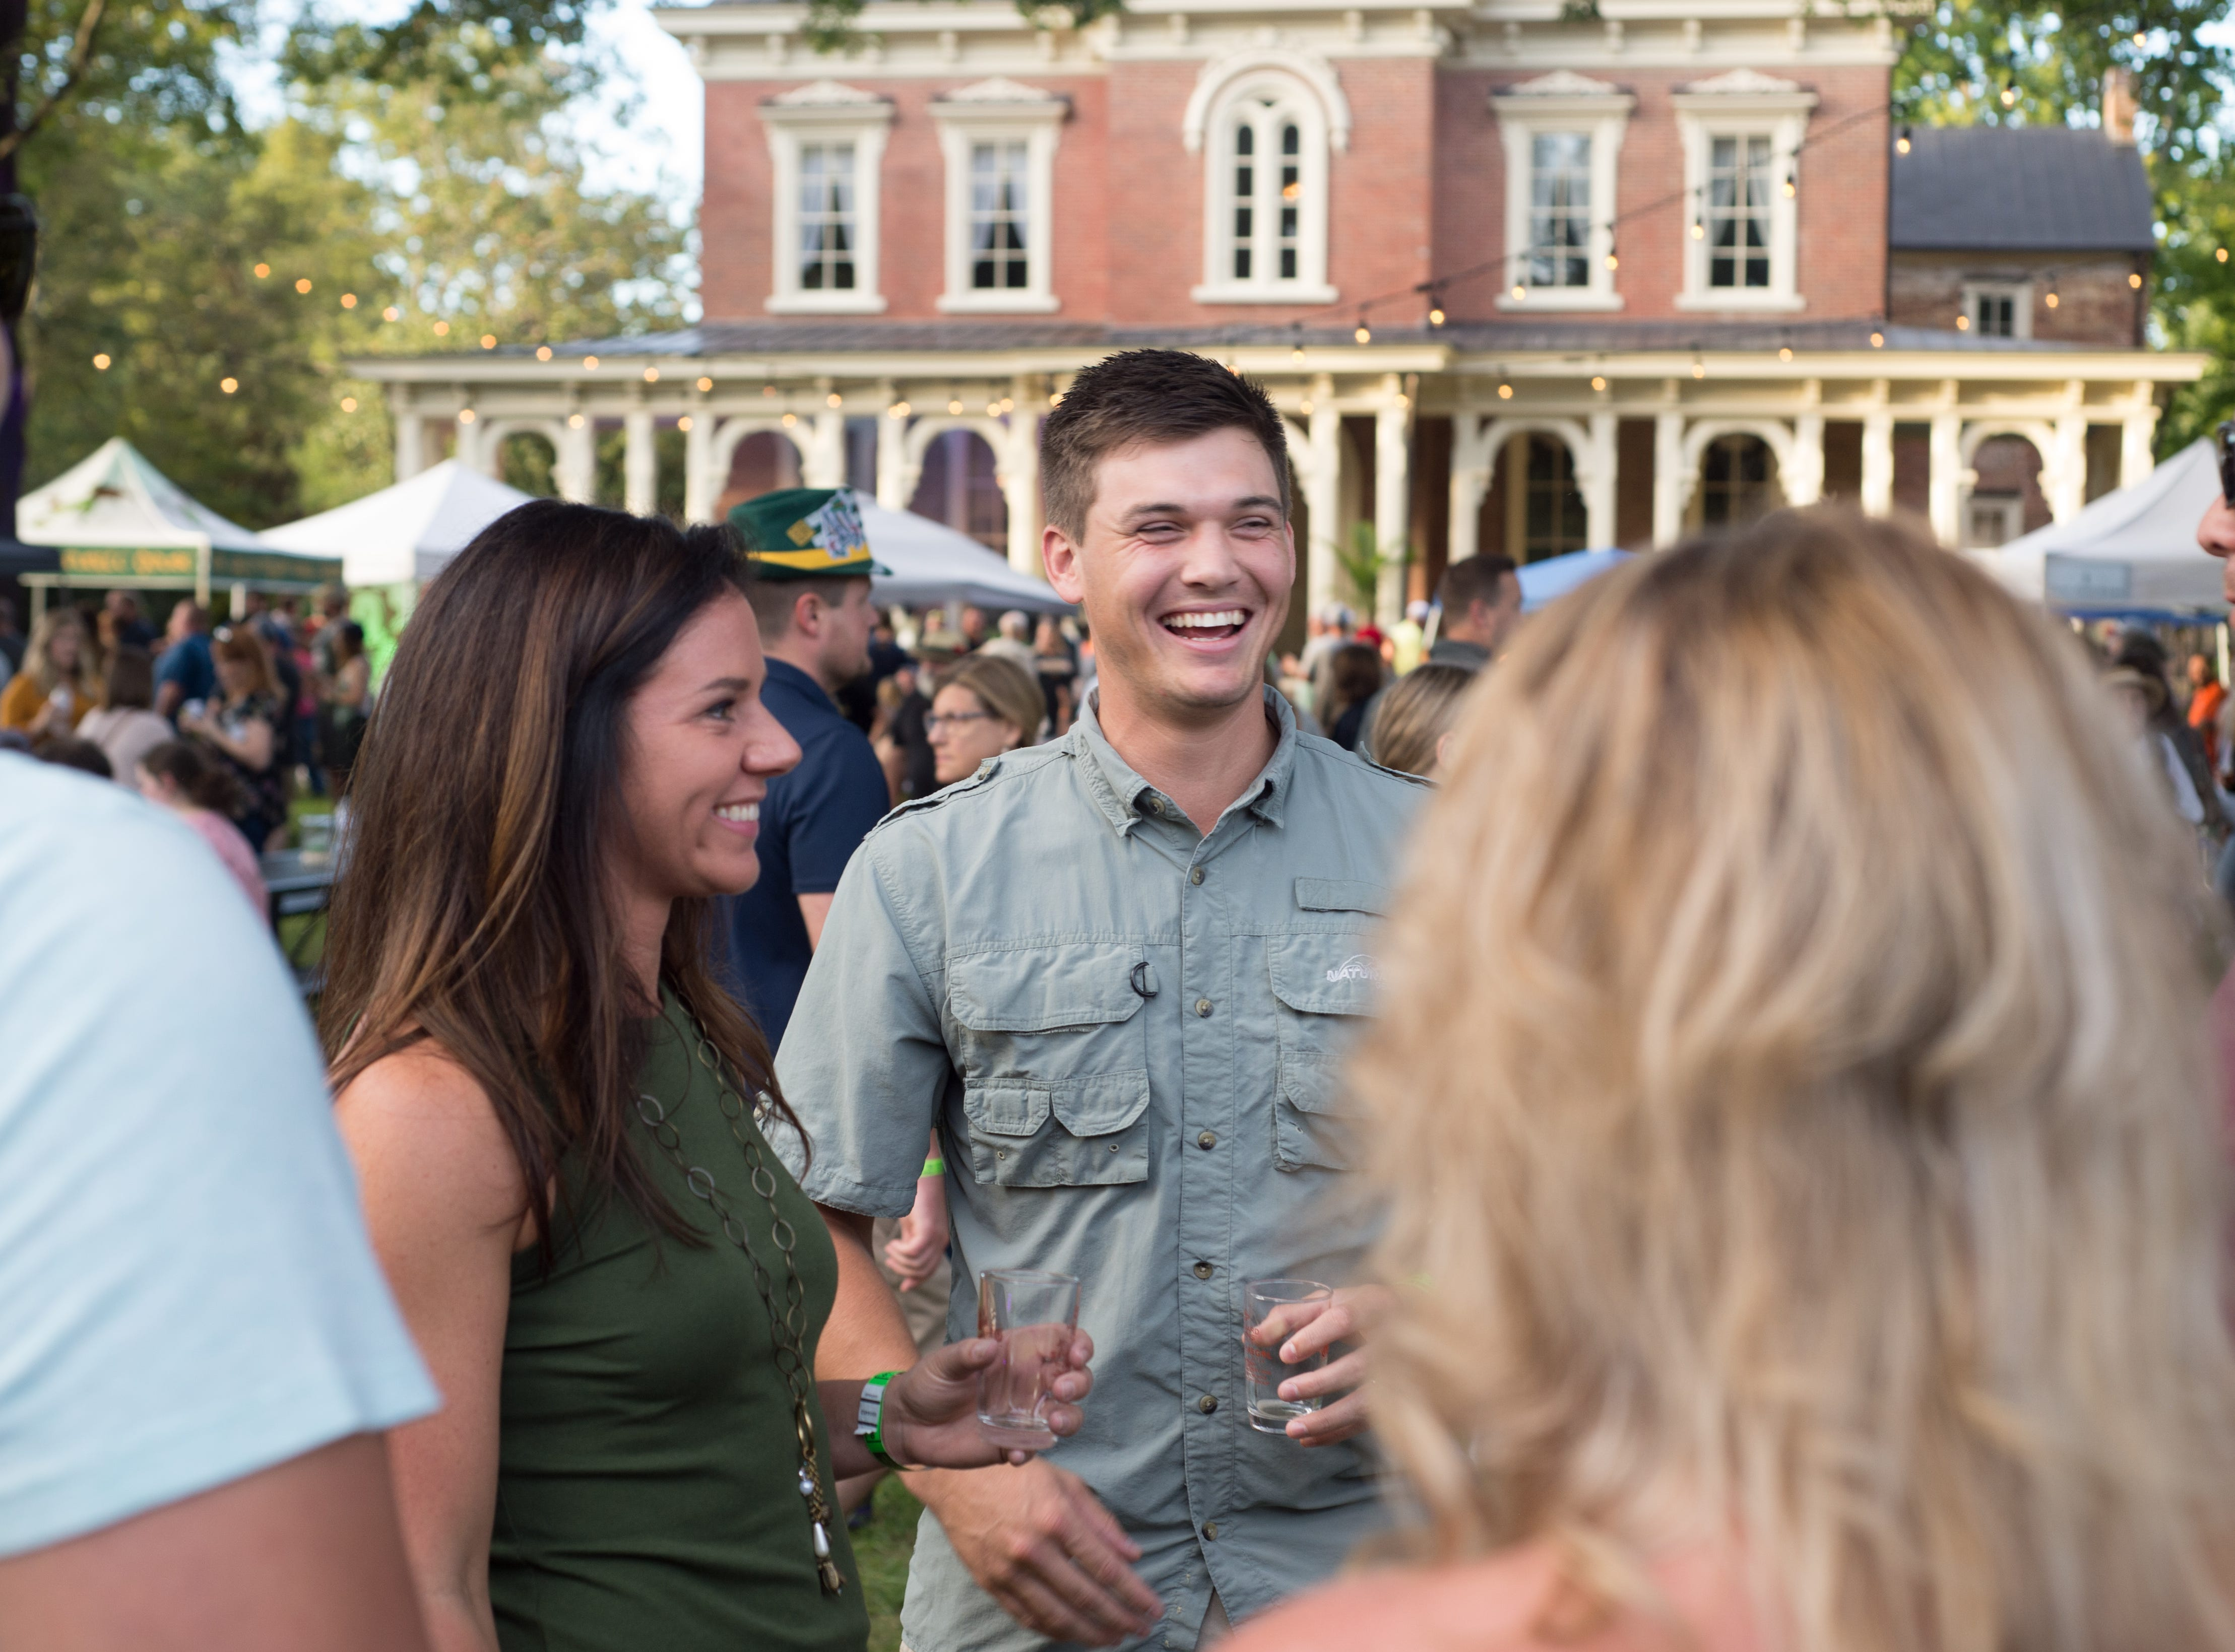 Connor Shea has a great time during Oktoberfest at Oaklands Mansion in Murfreesboro on Saturday, Sept. 29.